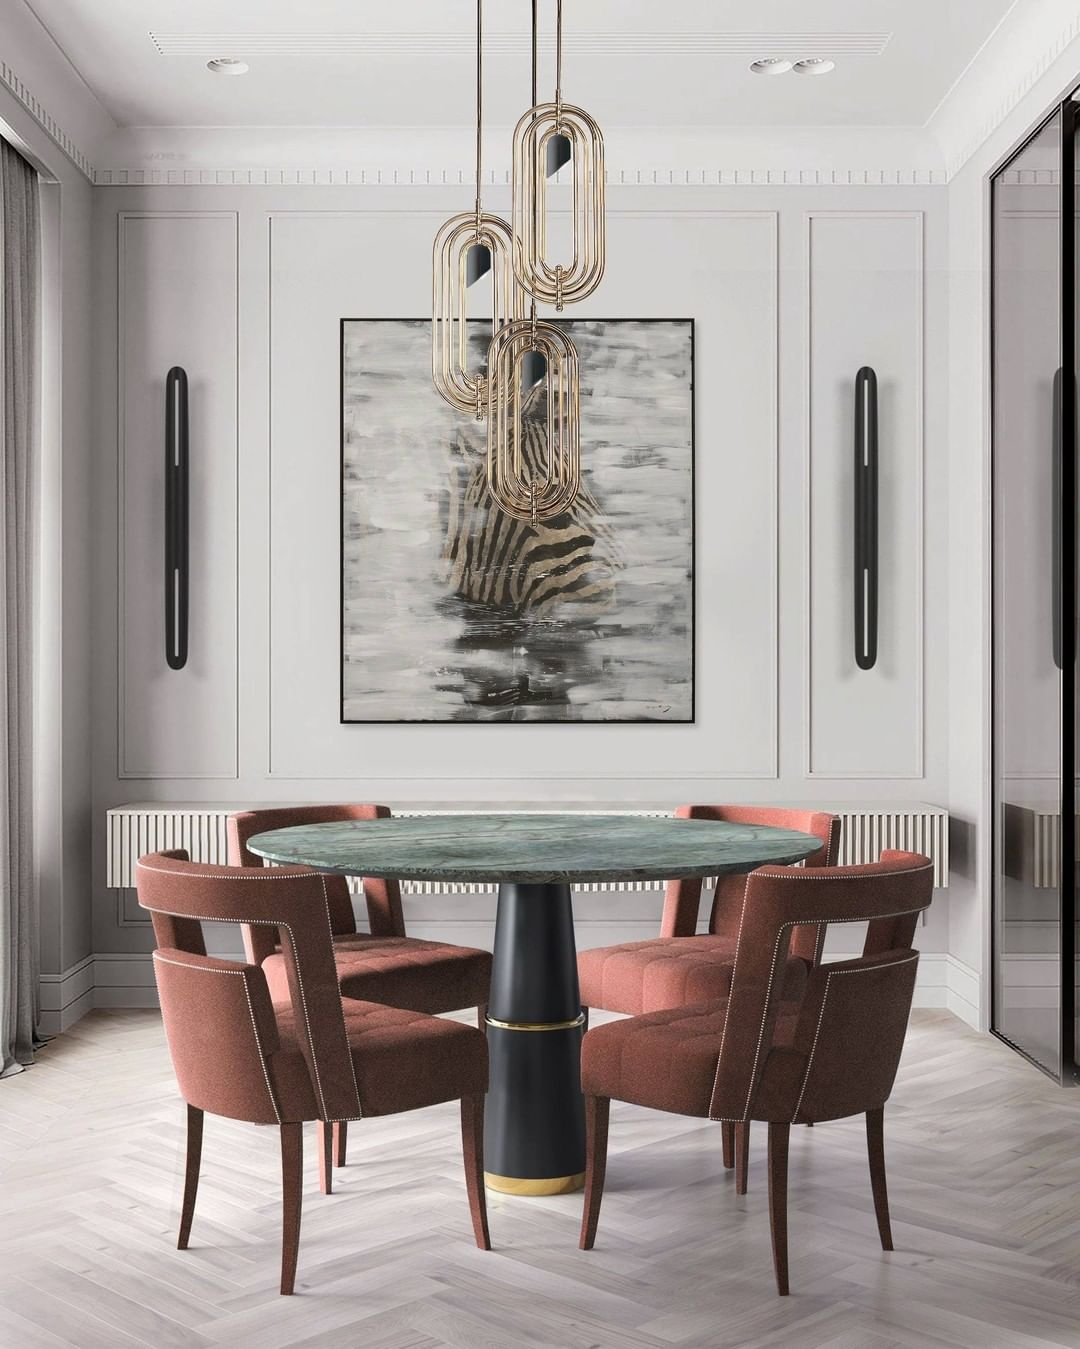 THE PIECE TO COMPLEMENT ANY NEUTRAL DINING ROOM